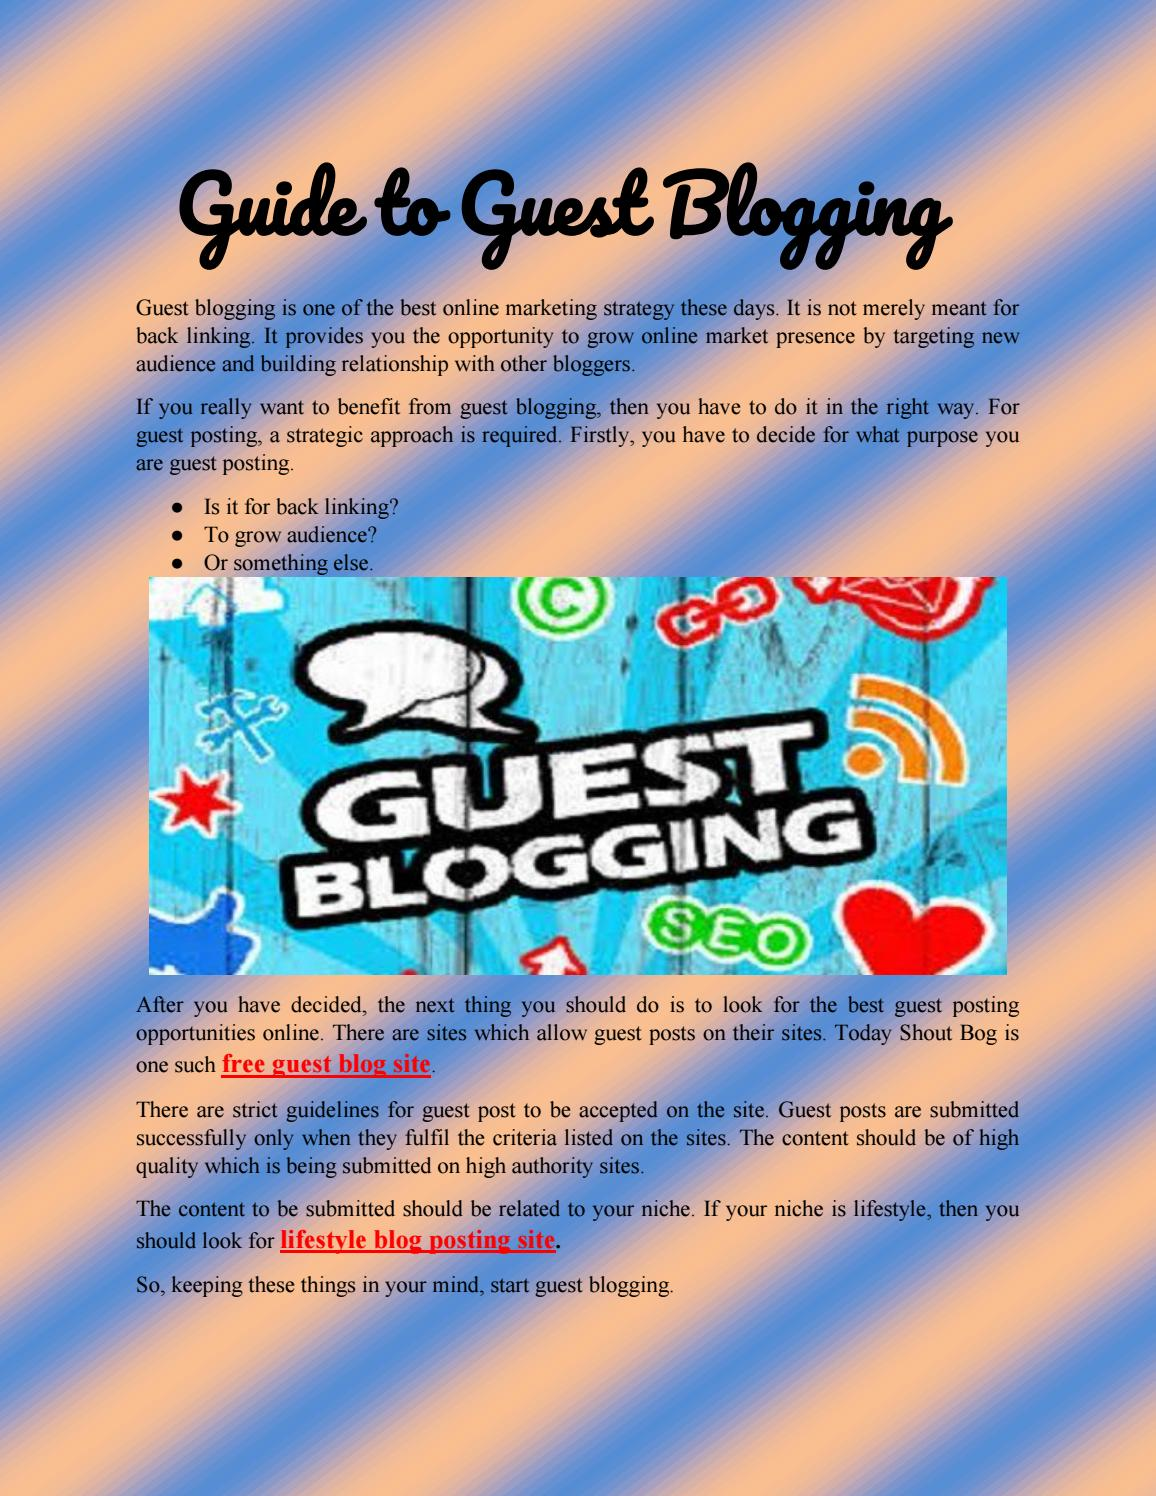 Guide to guest blogging by blog shout - issuu